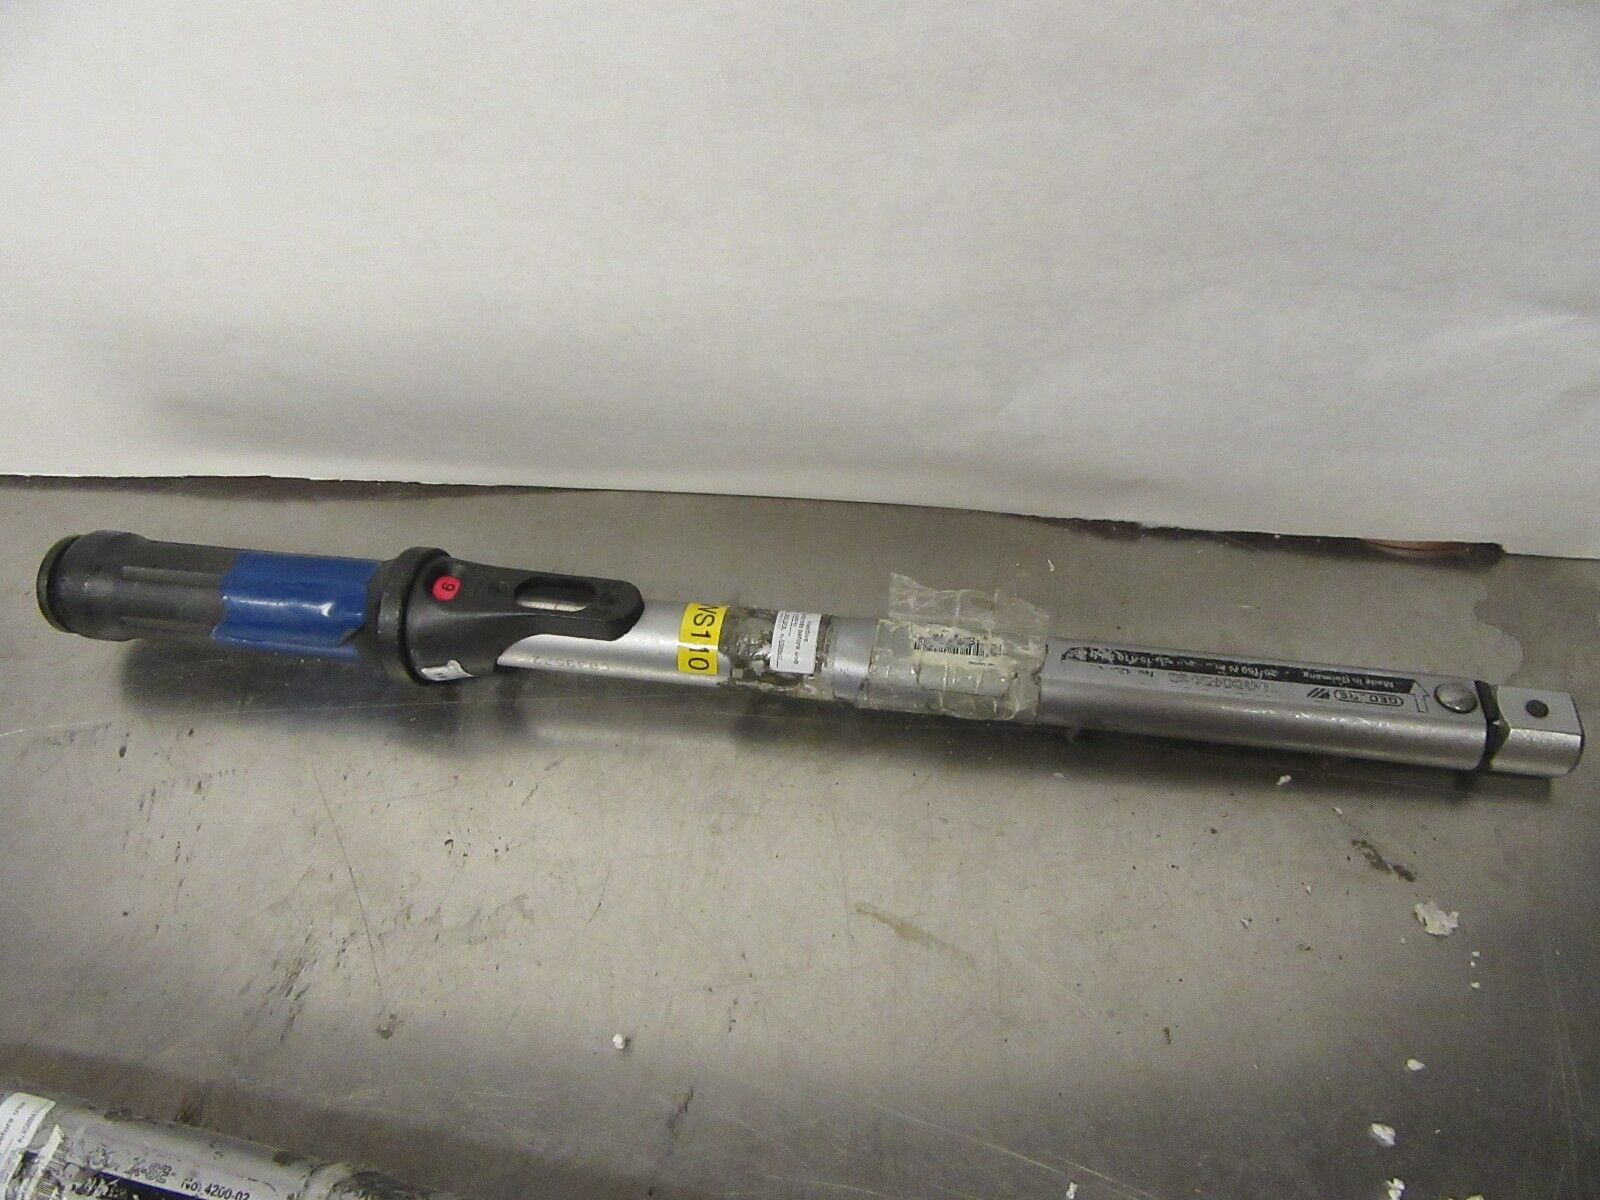 O127 GEDORE TORCOFIX-SE 15-110 LBF FT 20-50 N m MECHANICAL TORQUE WRENCH